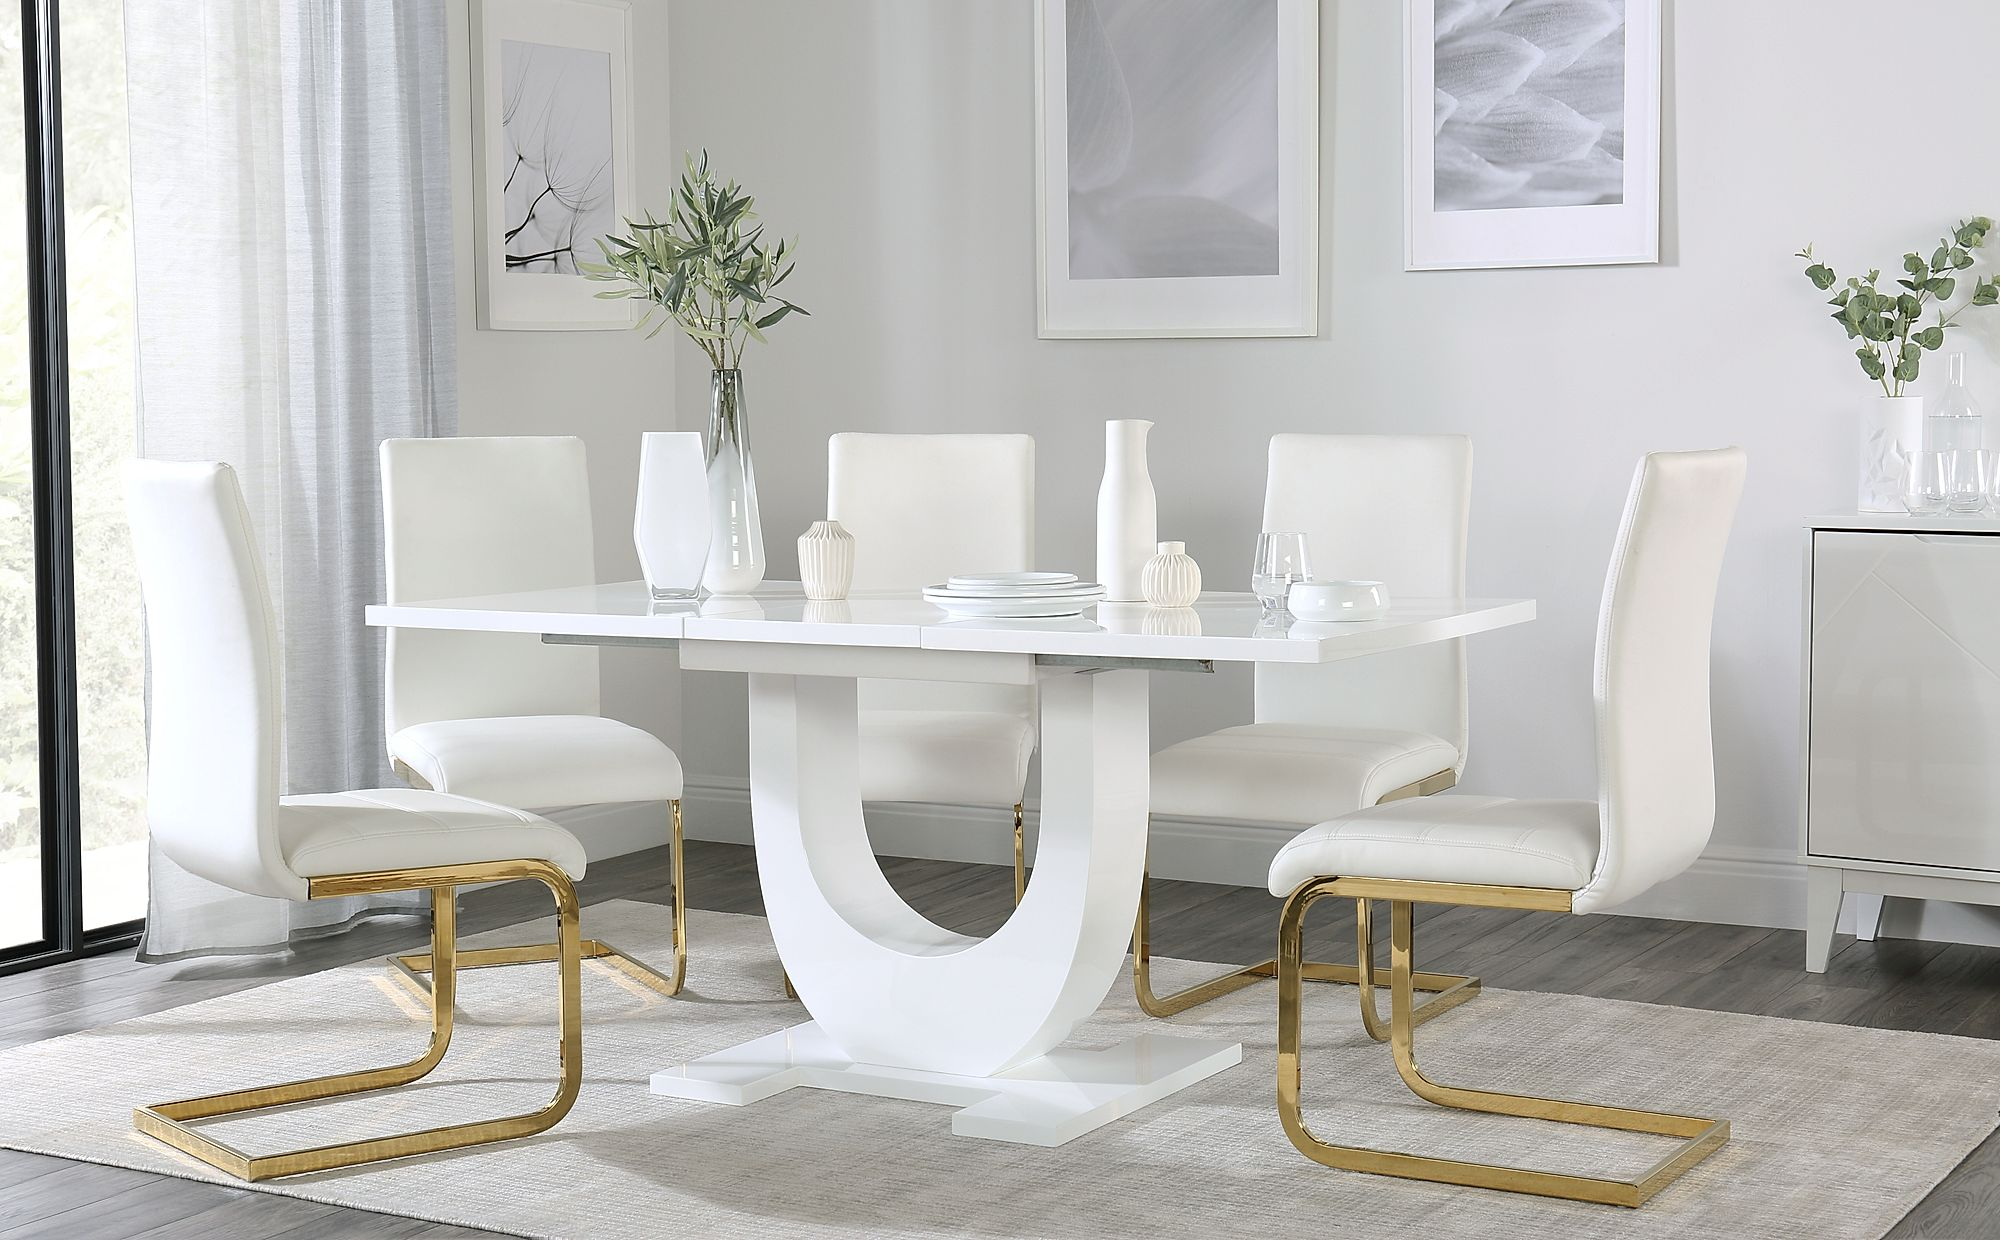 White And Gold Dining Chairs: Oslo White High Gloss Extending Dining Table With 4 Perth